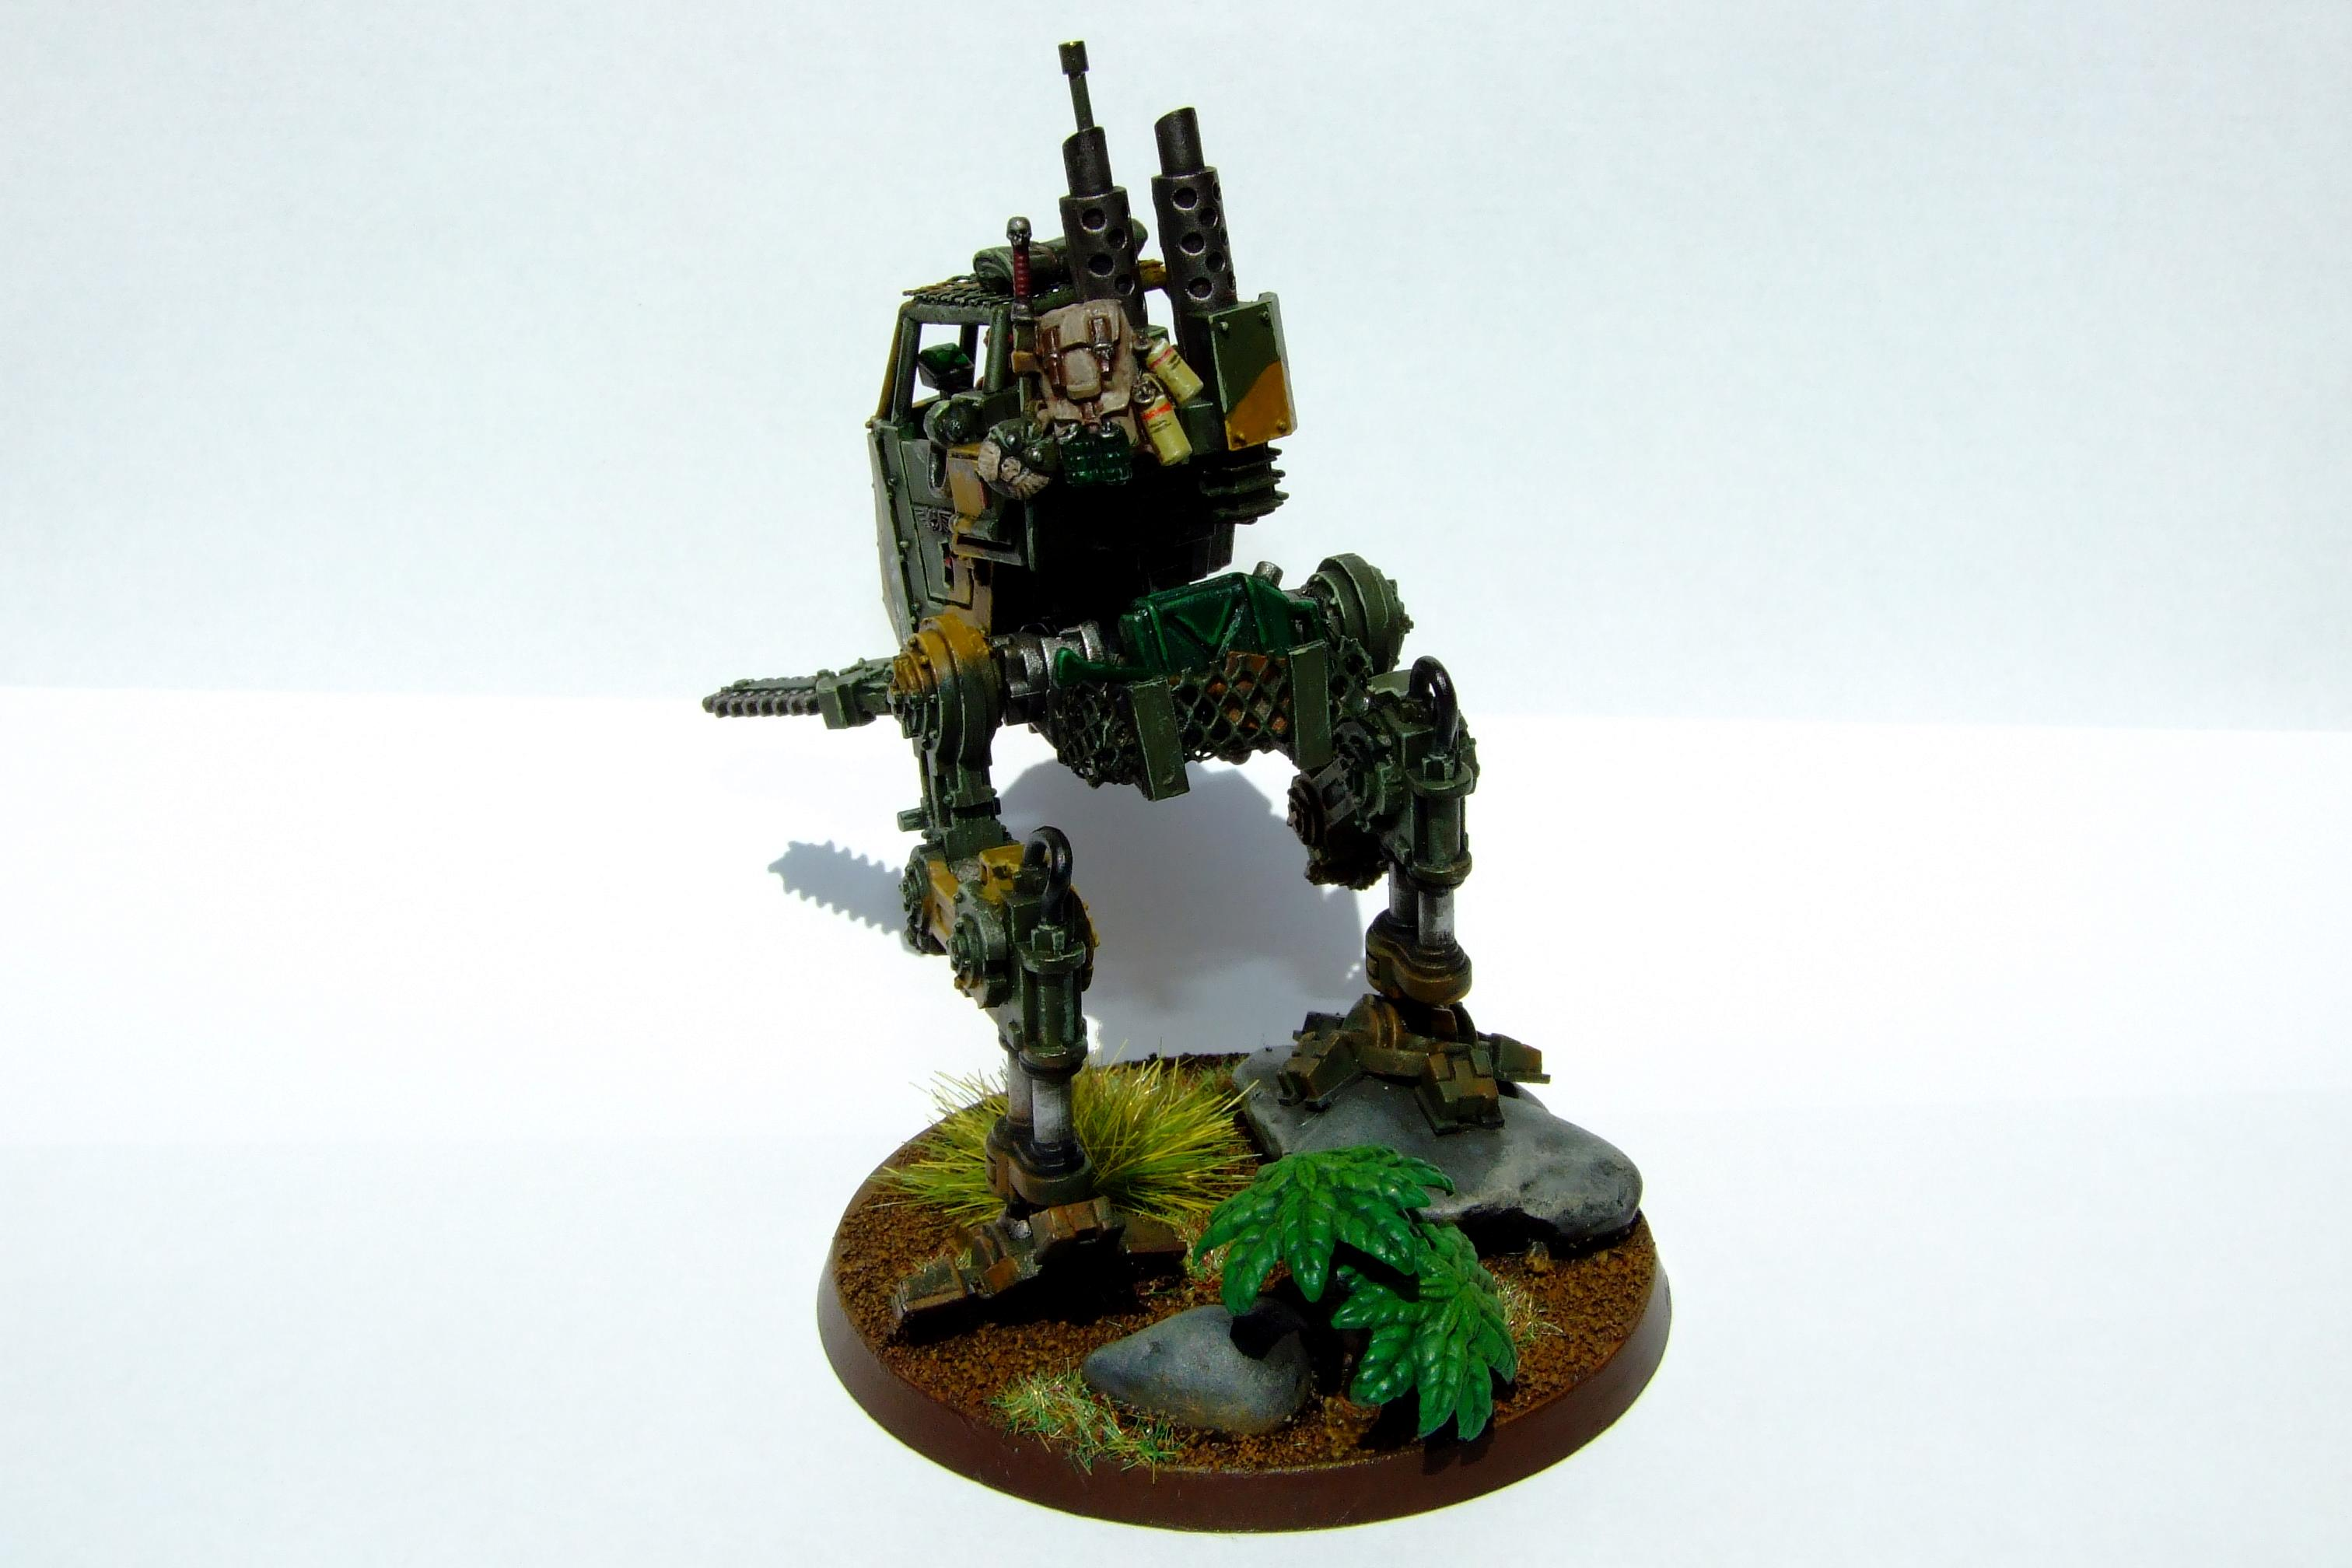 Camouflage, Camoufluage, Catachan, Imperial Guard, Jungle Fighter, Junlge, Sentinel, Walker, Warhammer 40,000